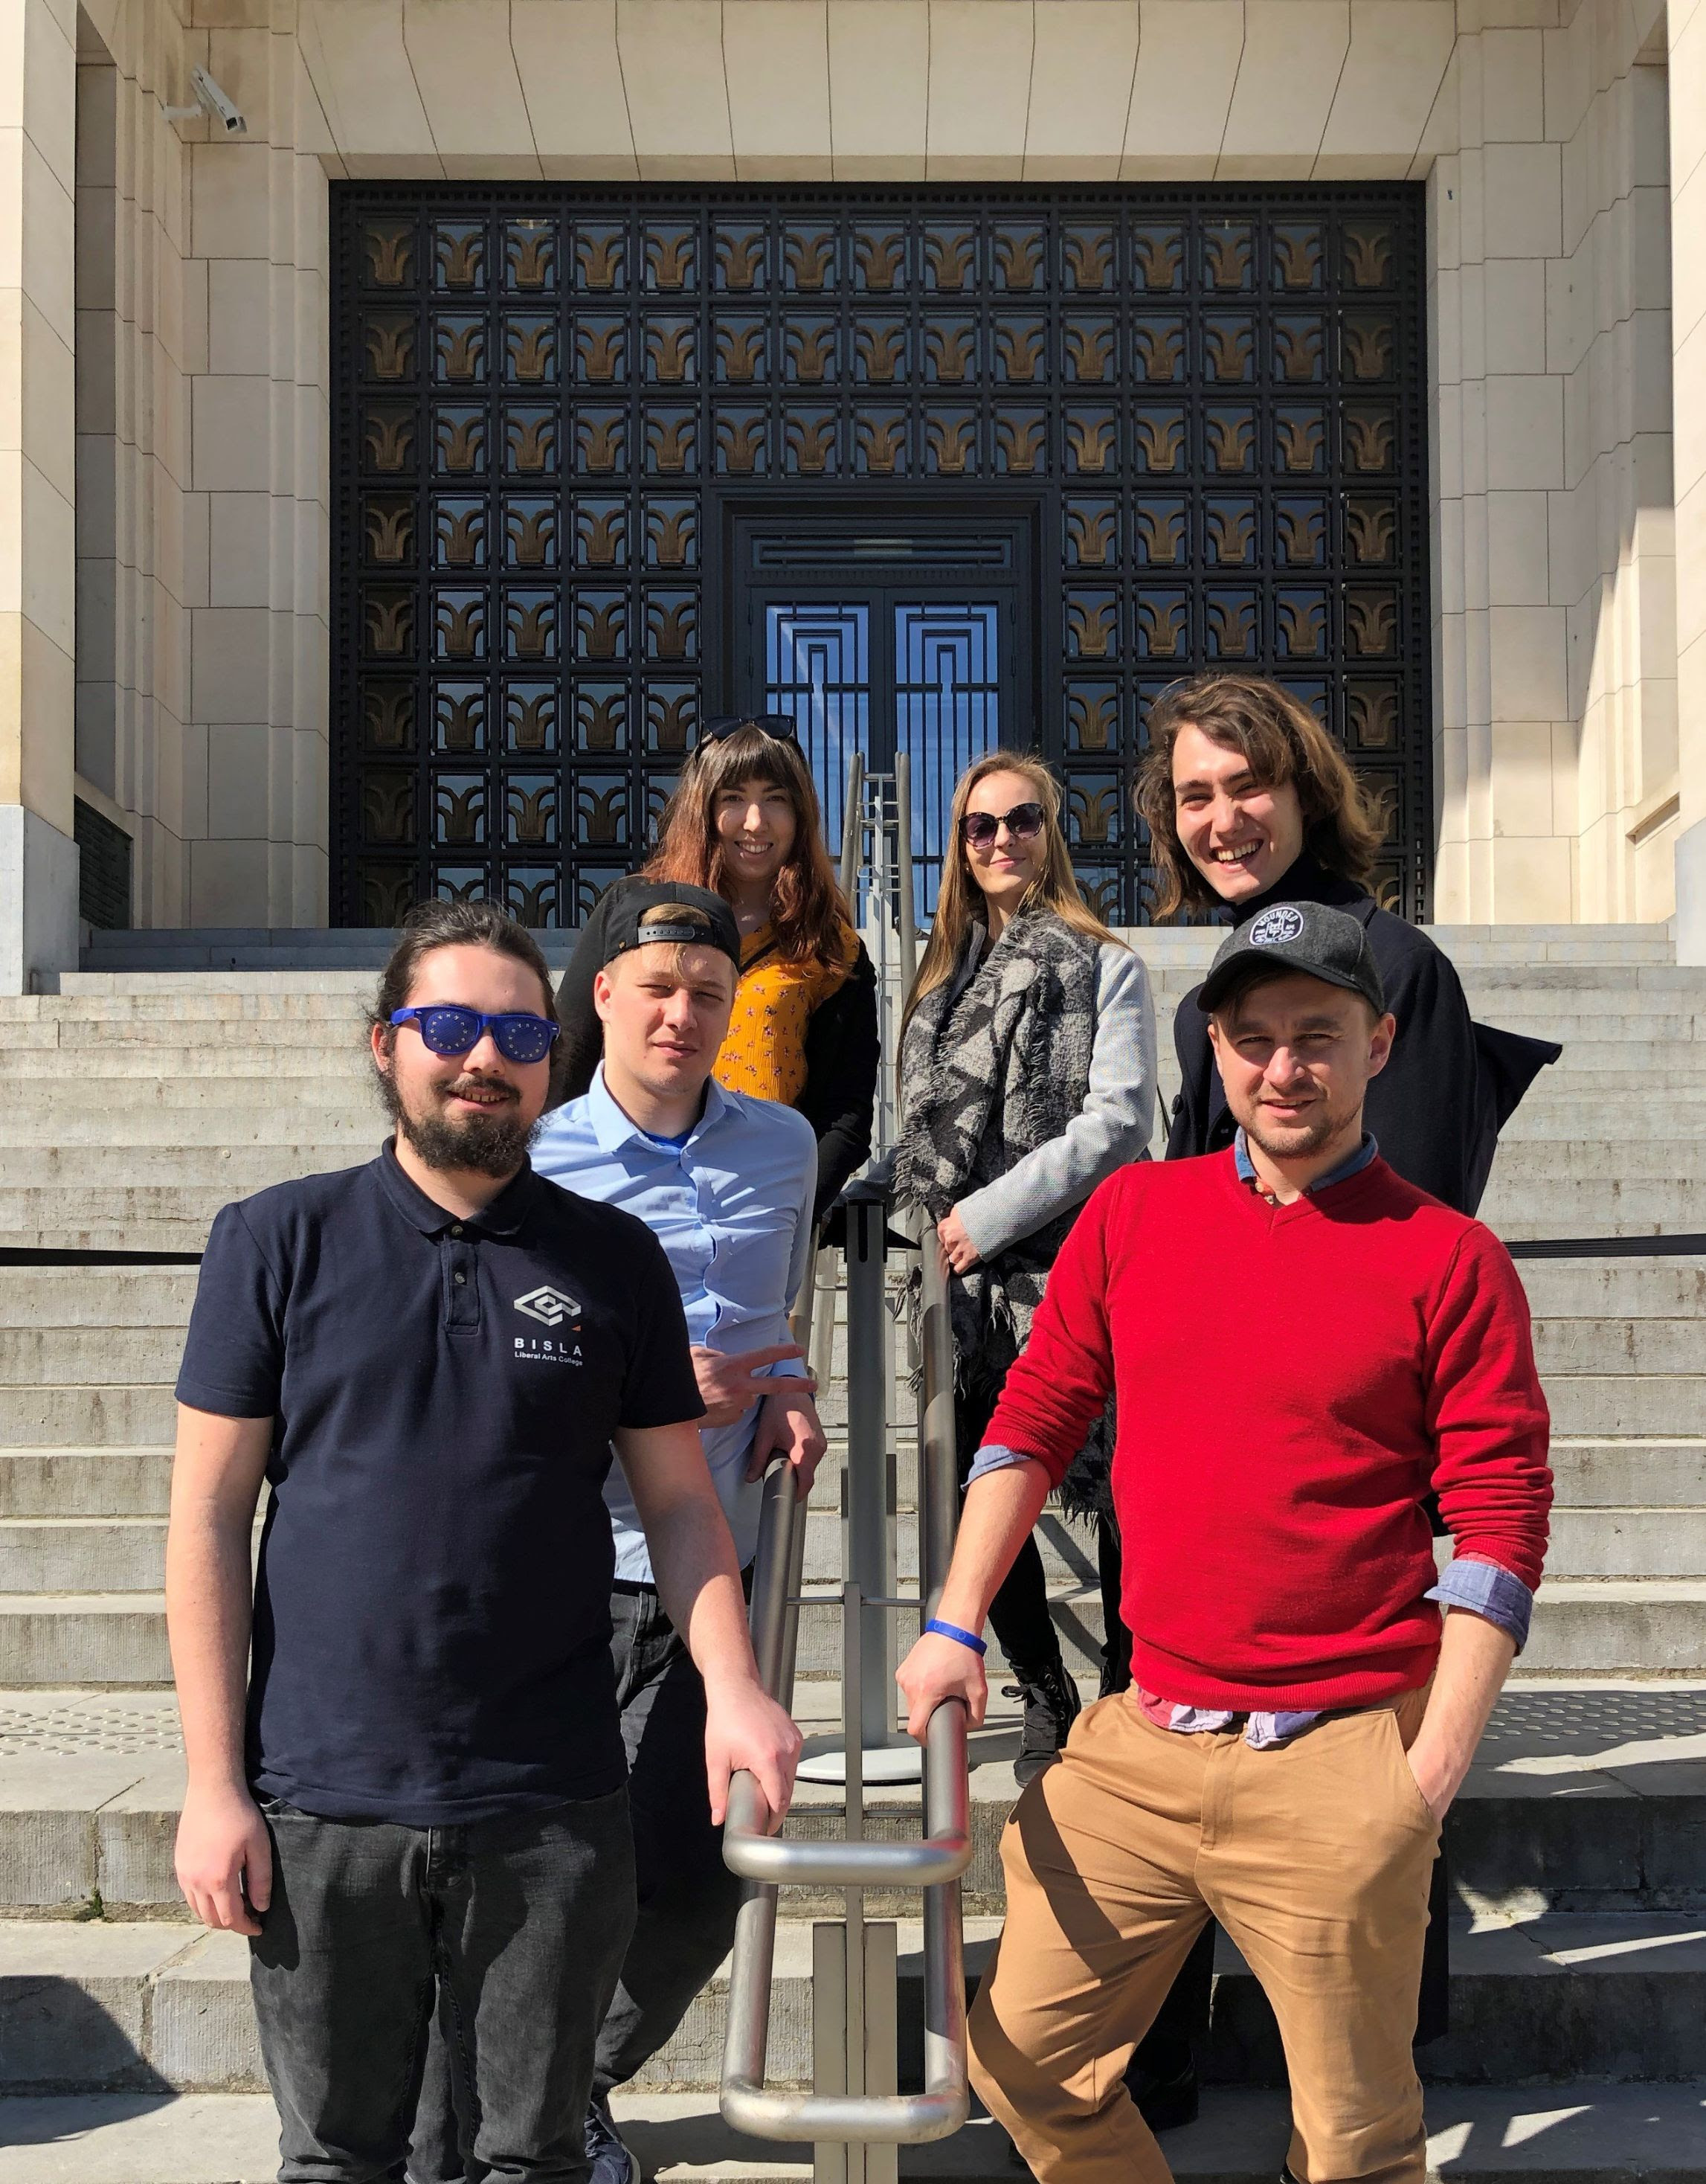 BISLA students in front of the museum of European History in Brussels. From the bottom left: Matej, Miloslav, Alexandra. From bottom right: Peter, Michal, Maria.